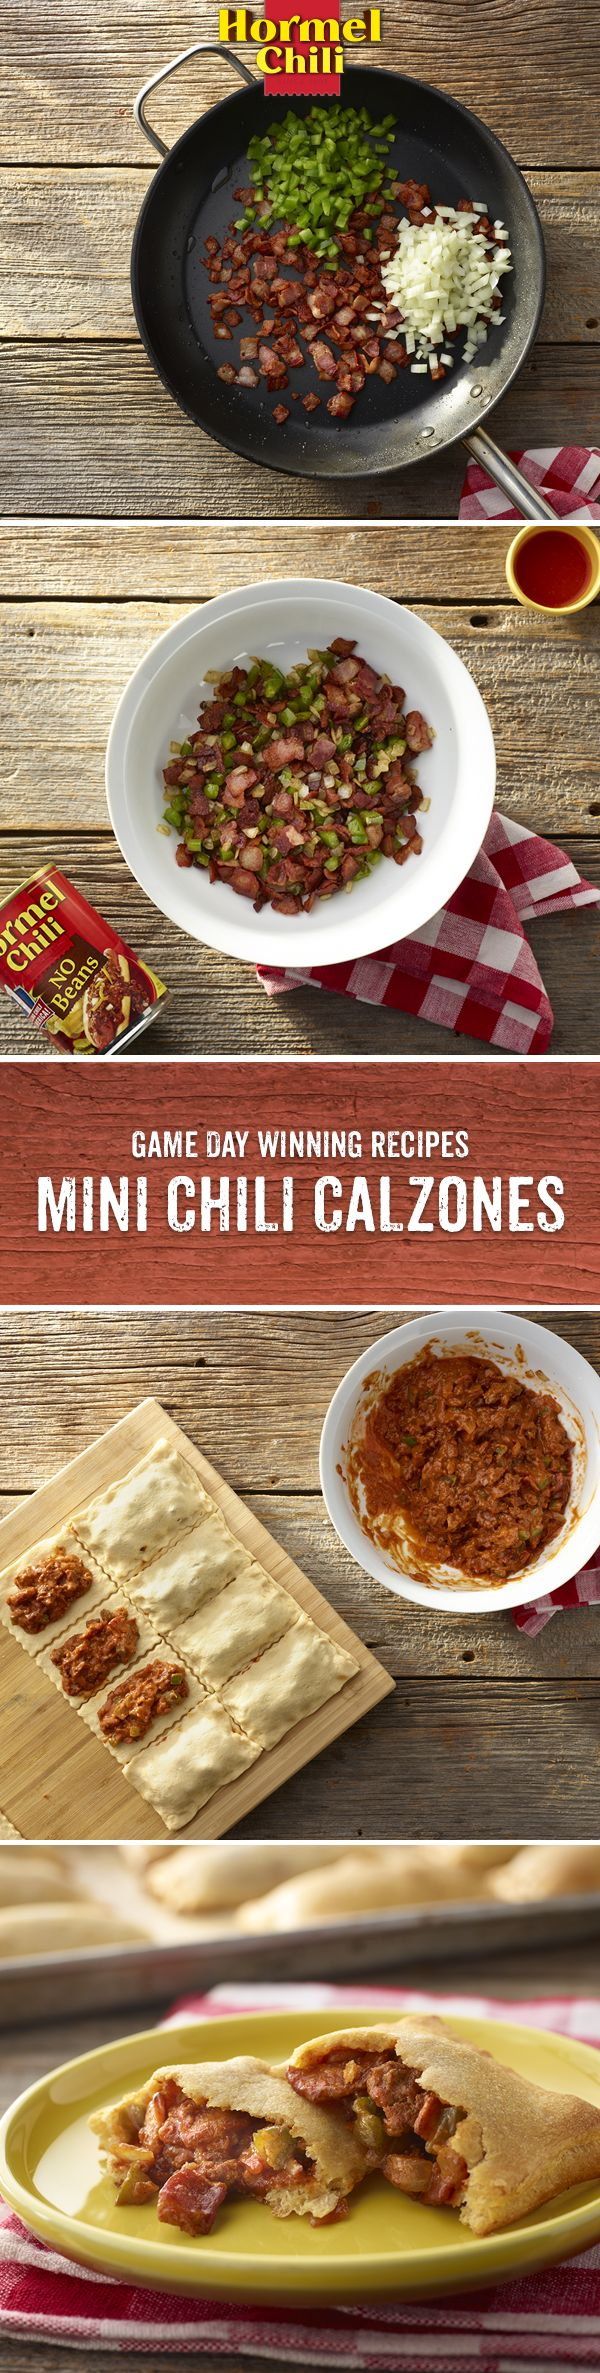 Prep for the game with Mini Chili Calzones with major HORMEL® Chili taste.